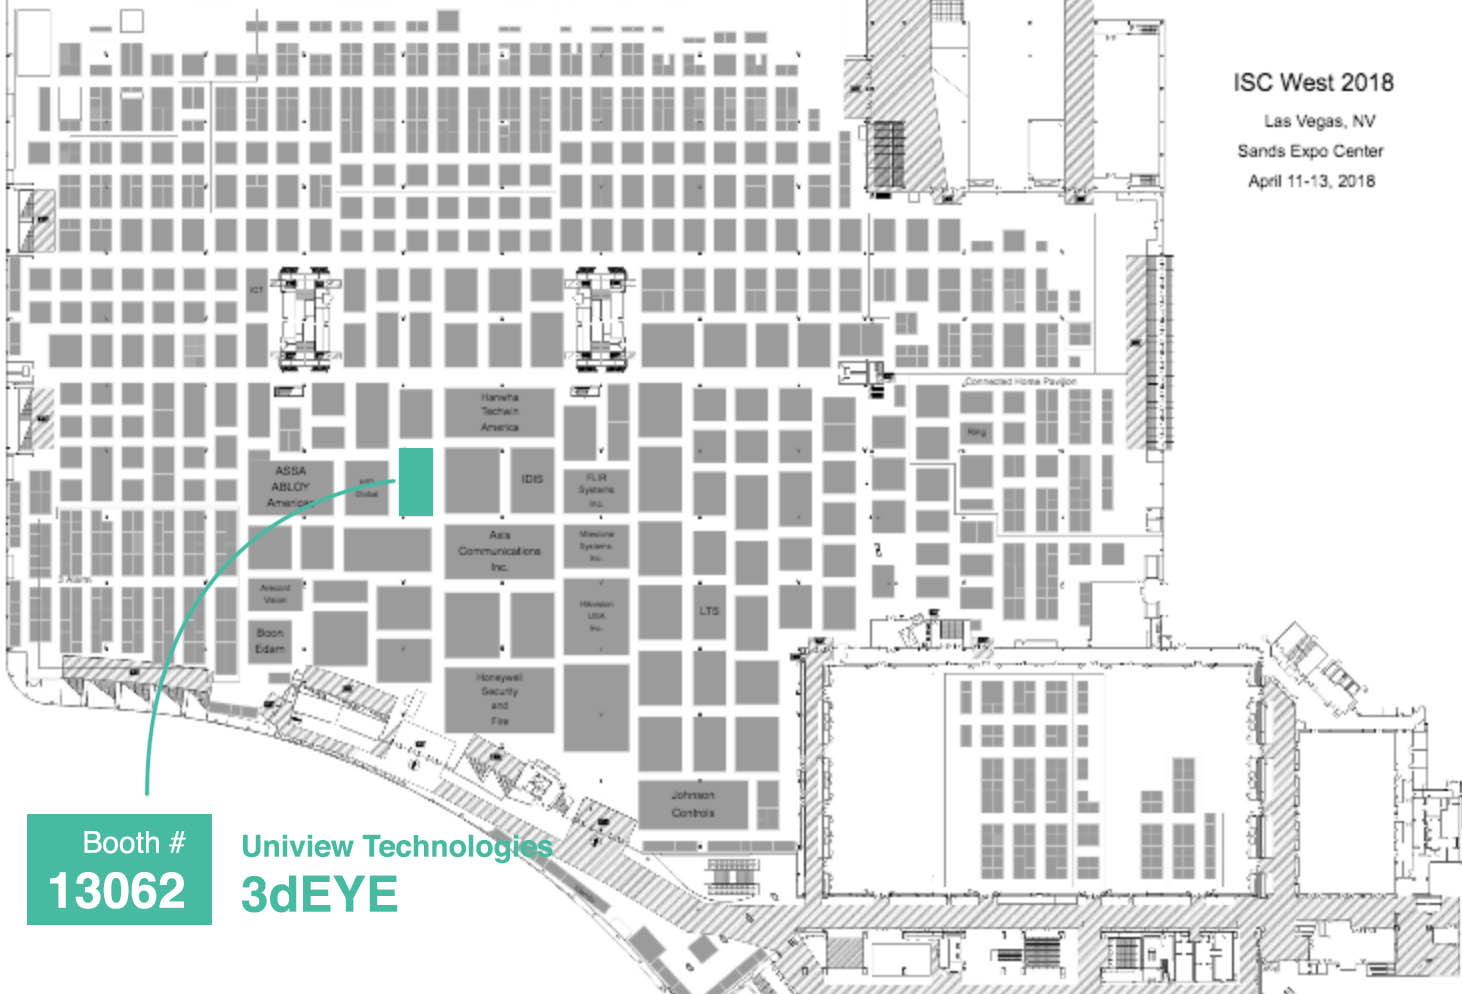 3dEYE Inc. will exhibit at the largest security trade show in North America - ISC WEST 2018 on April 11 – 13, 2018